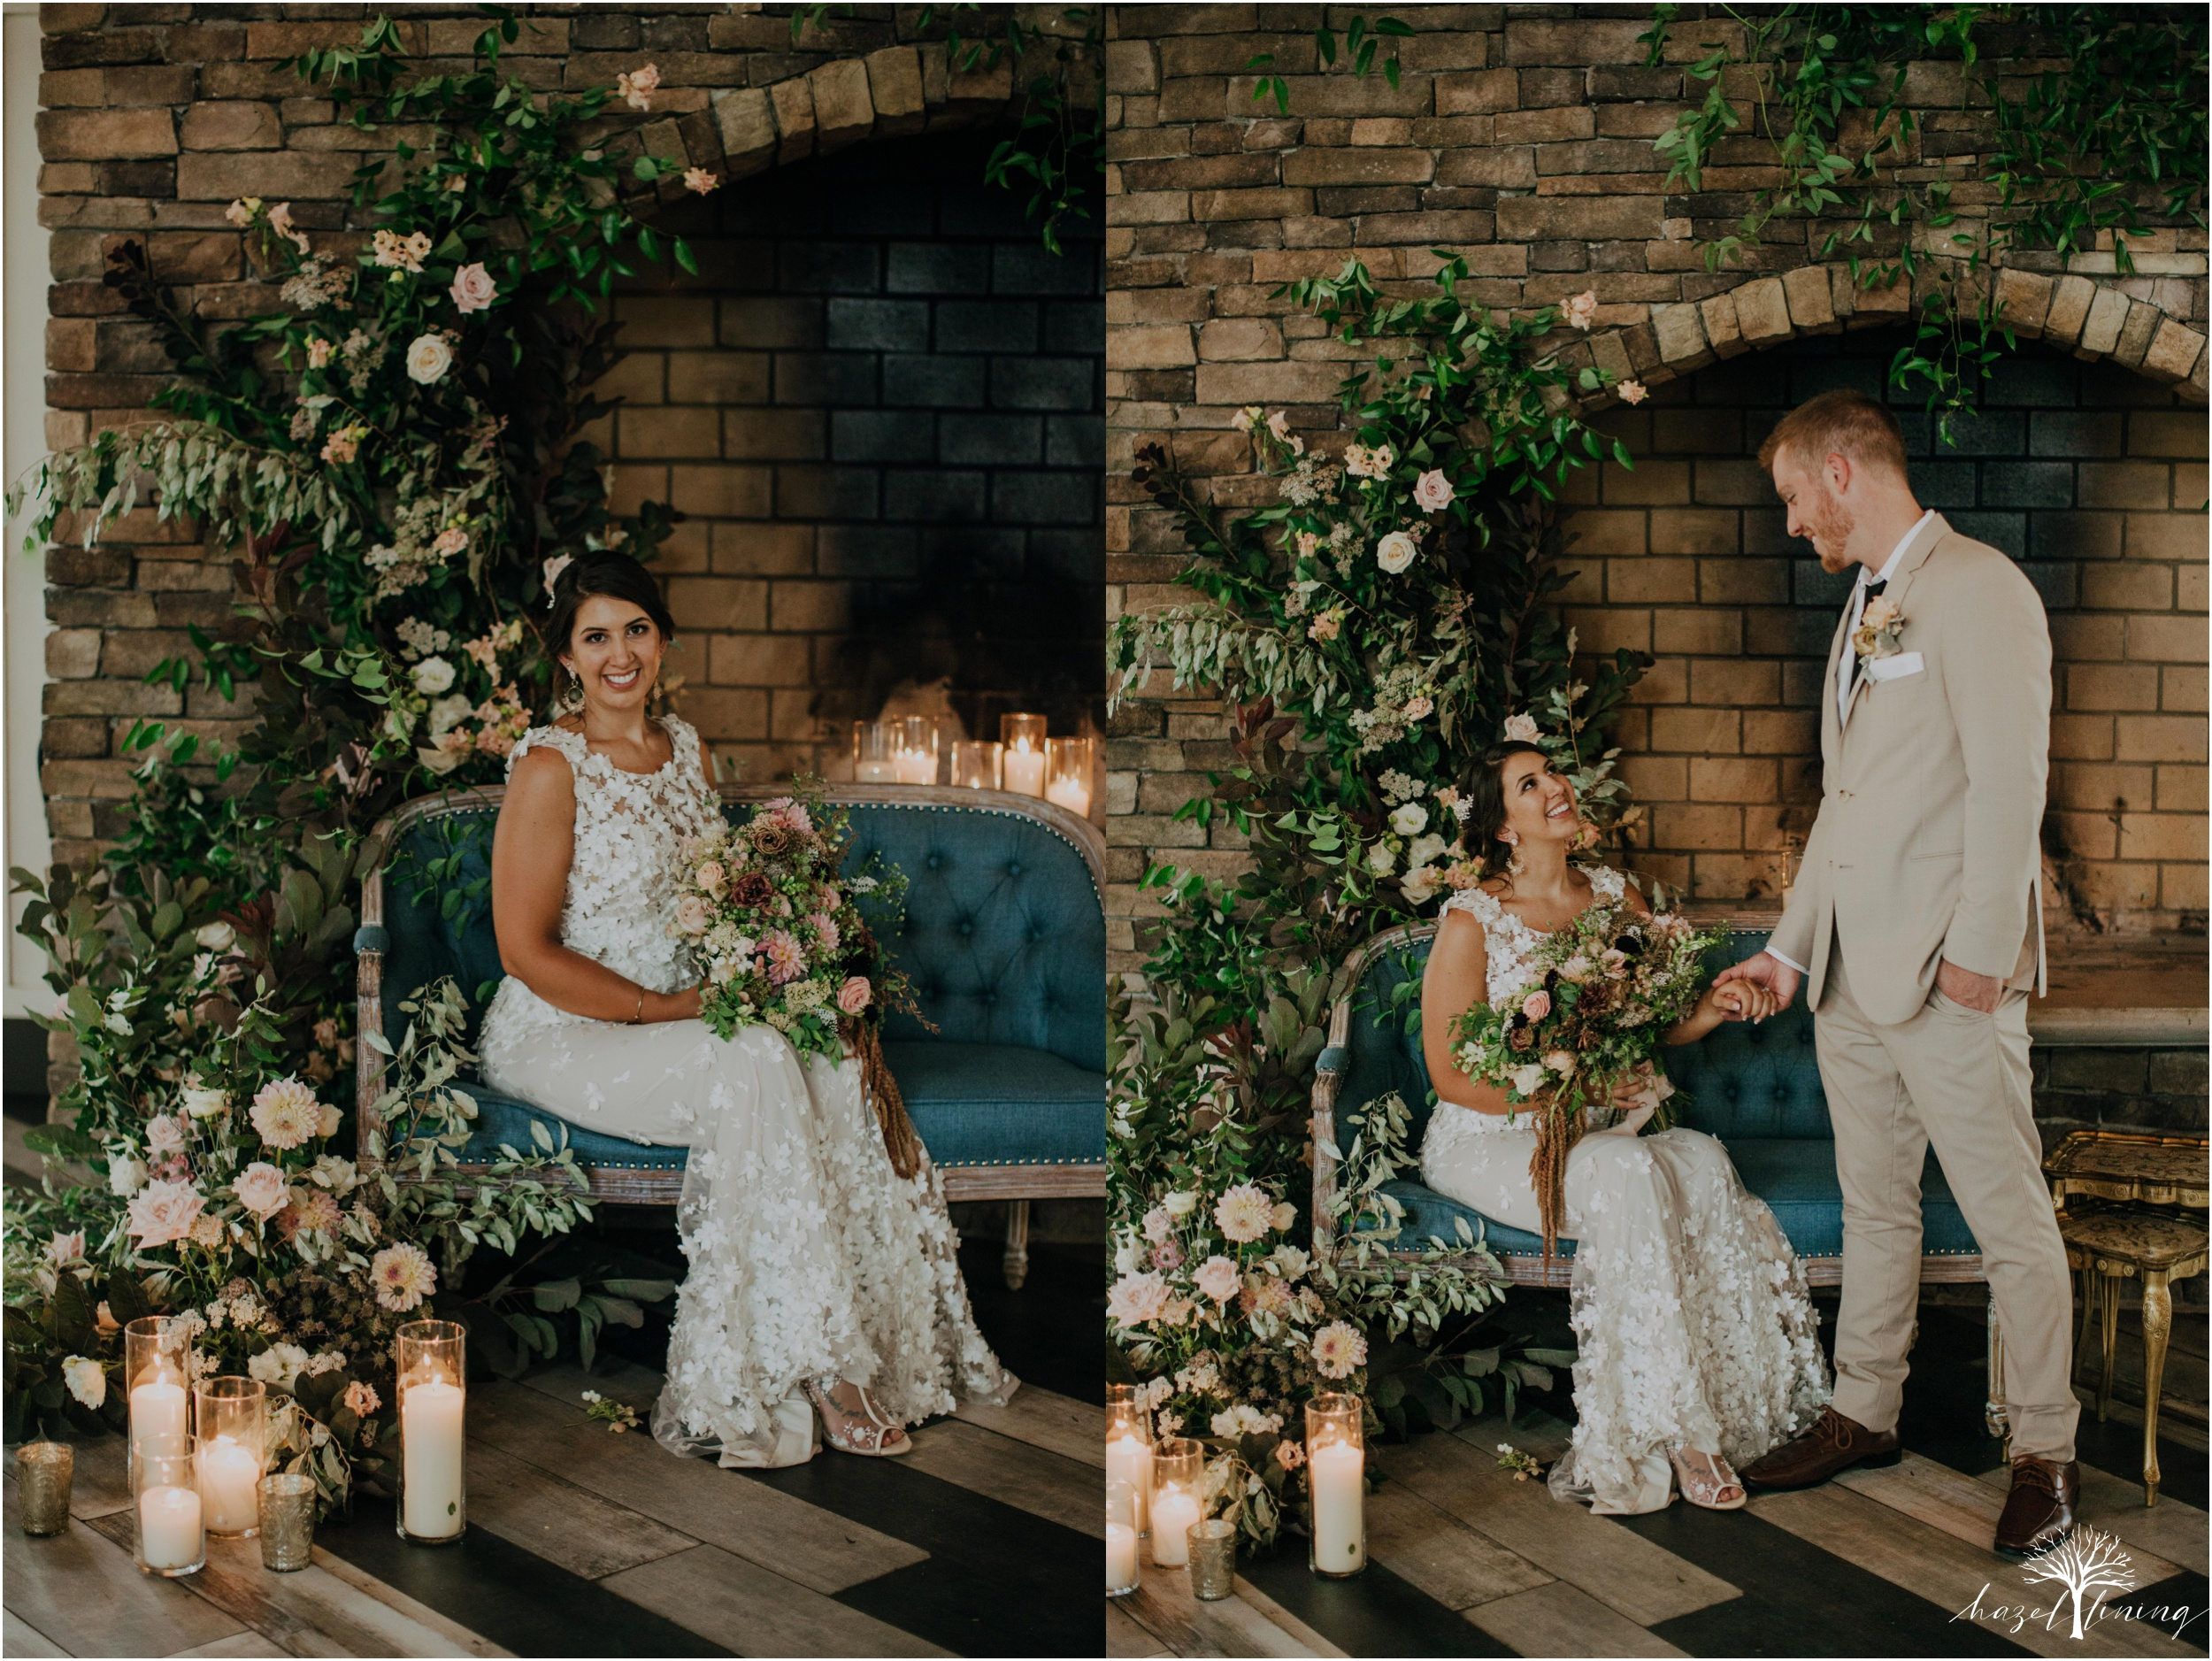 carl-chloe-the-ryland-inn-whitehouse-station-new-jersey-styled-squad-hazel-lining-photography-destination-elopement-wedding-engagement-photography_0047.jpg